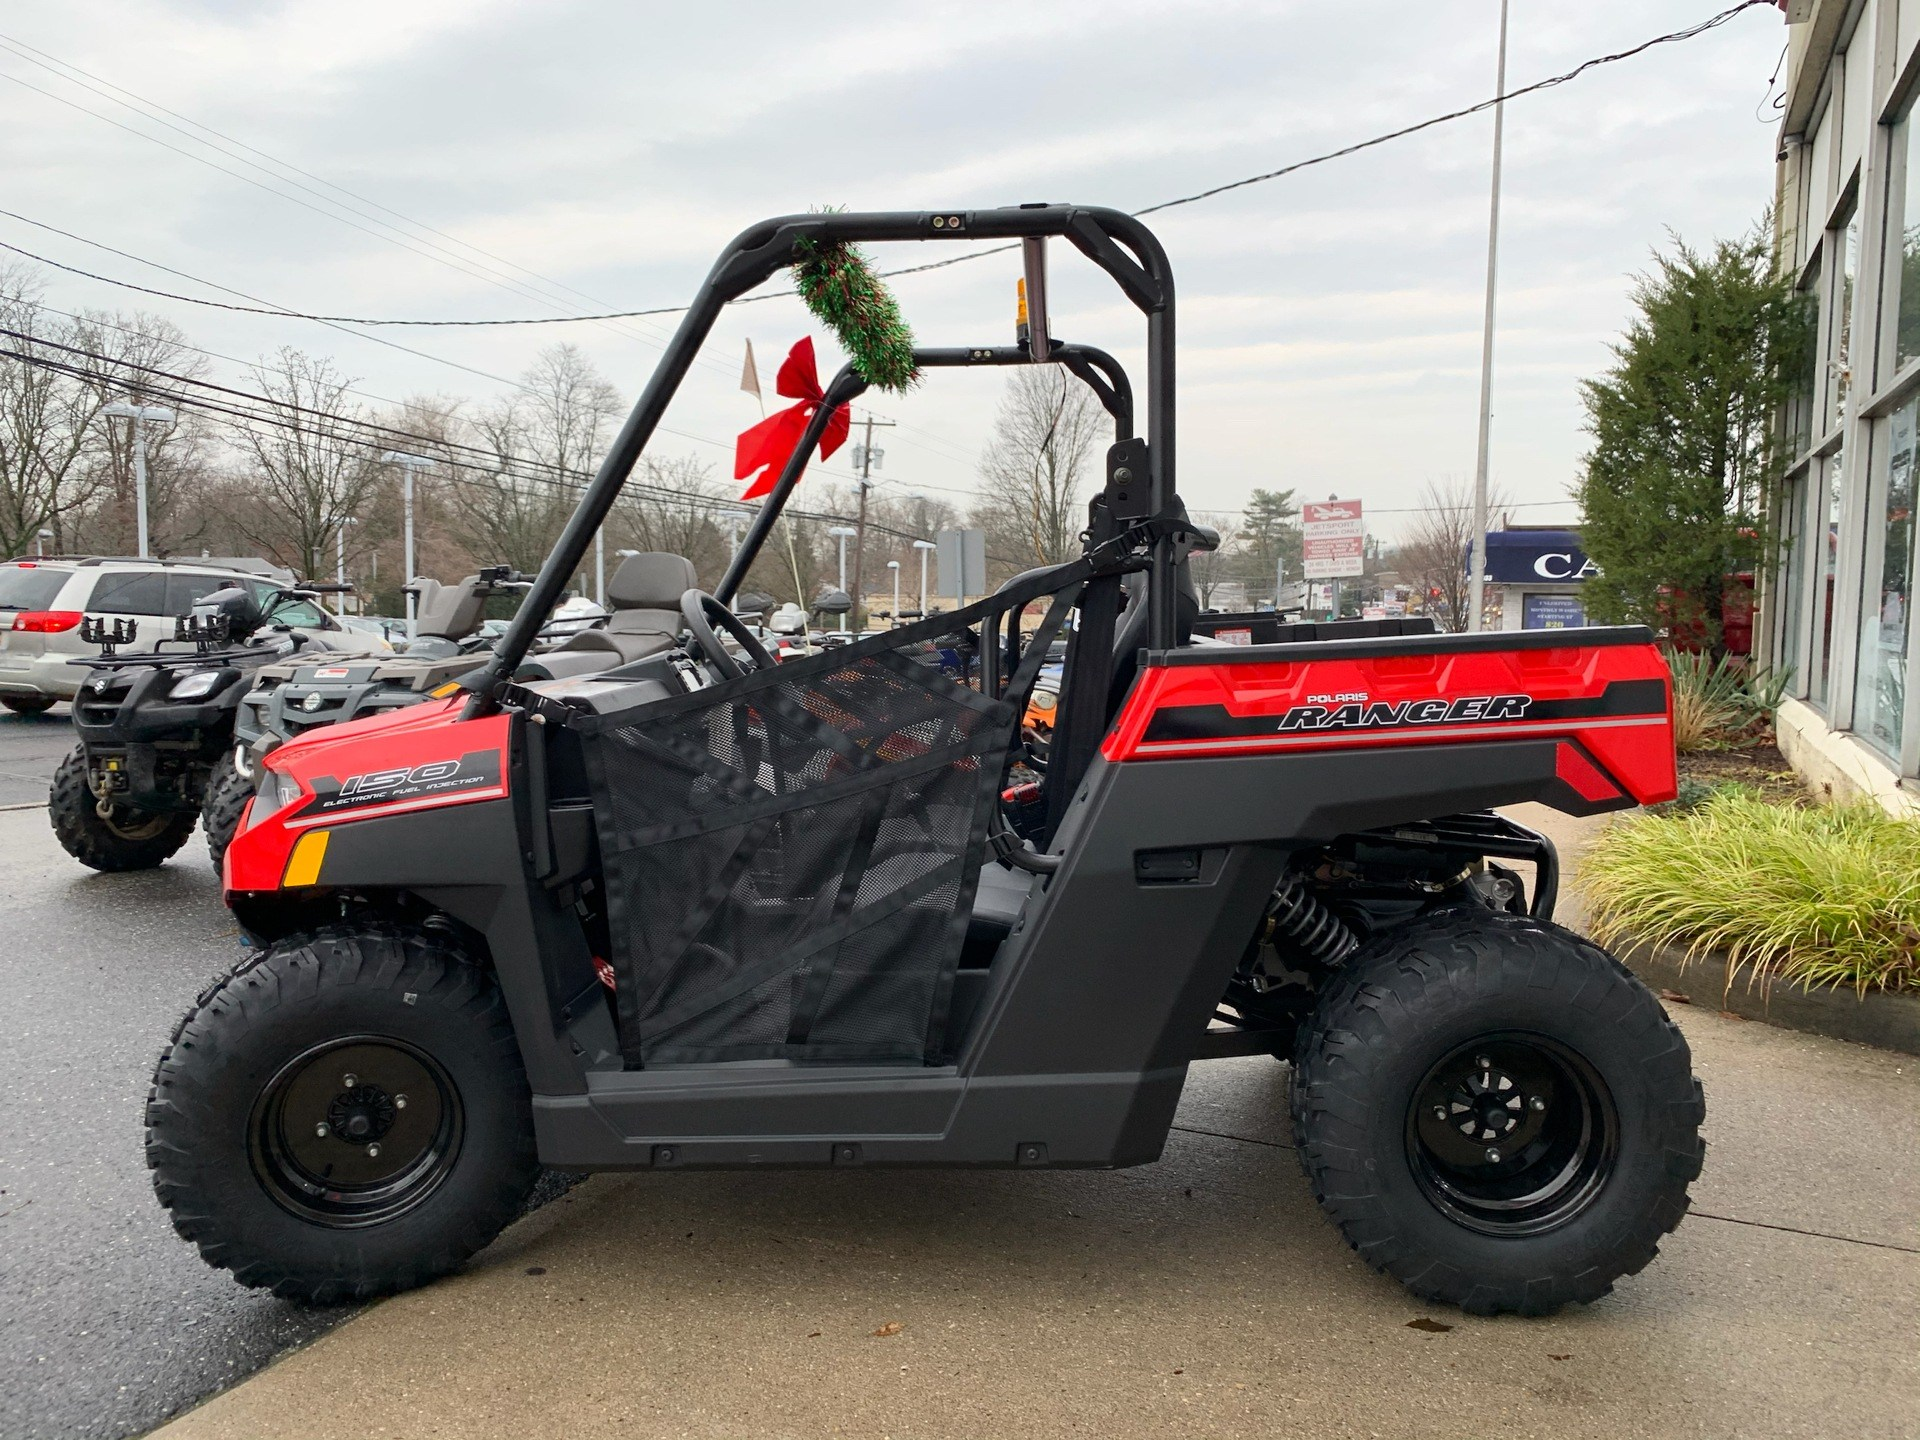 2019 Polaris Ranger 150 EFI in Huntington Station, New York - Photo 4